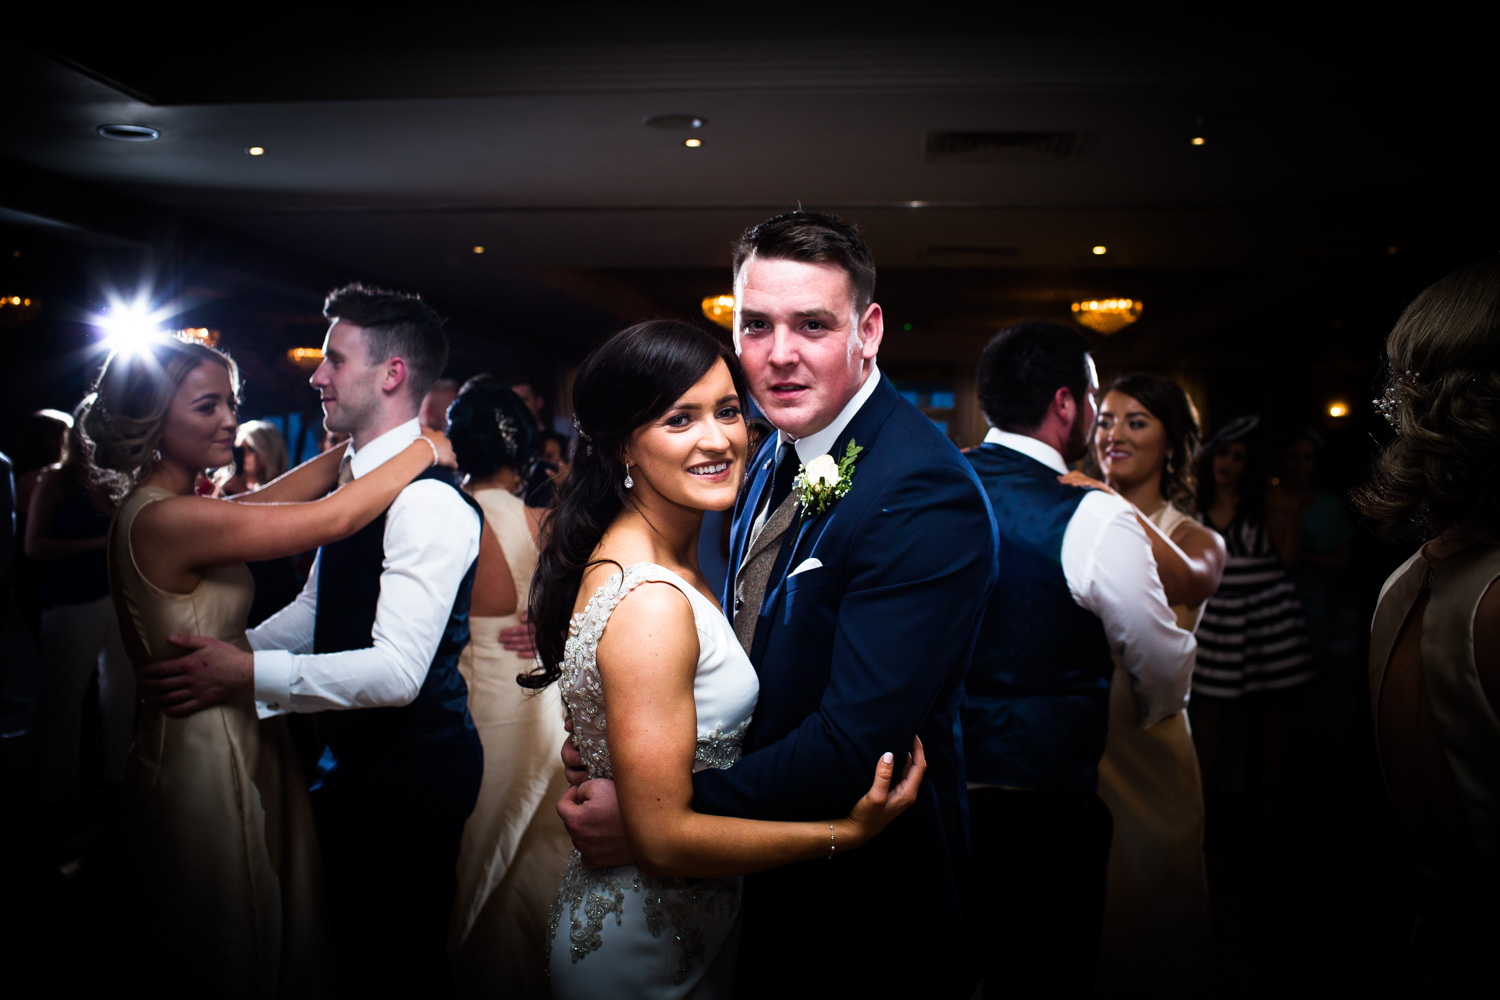 Mark_Barnes_Northern_Ireland_wedding_photographer_redcastle_hotel_Donegal_Wedding_photography_Donegal_wedding_photographer-64.jpg